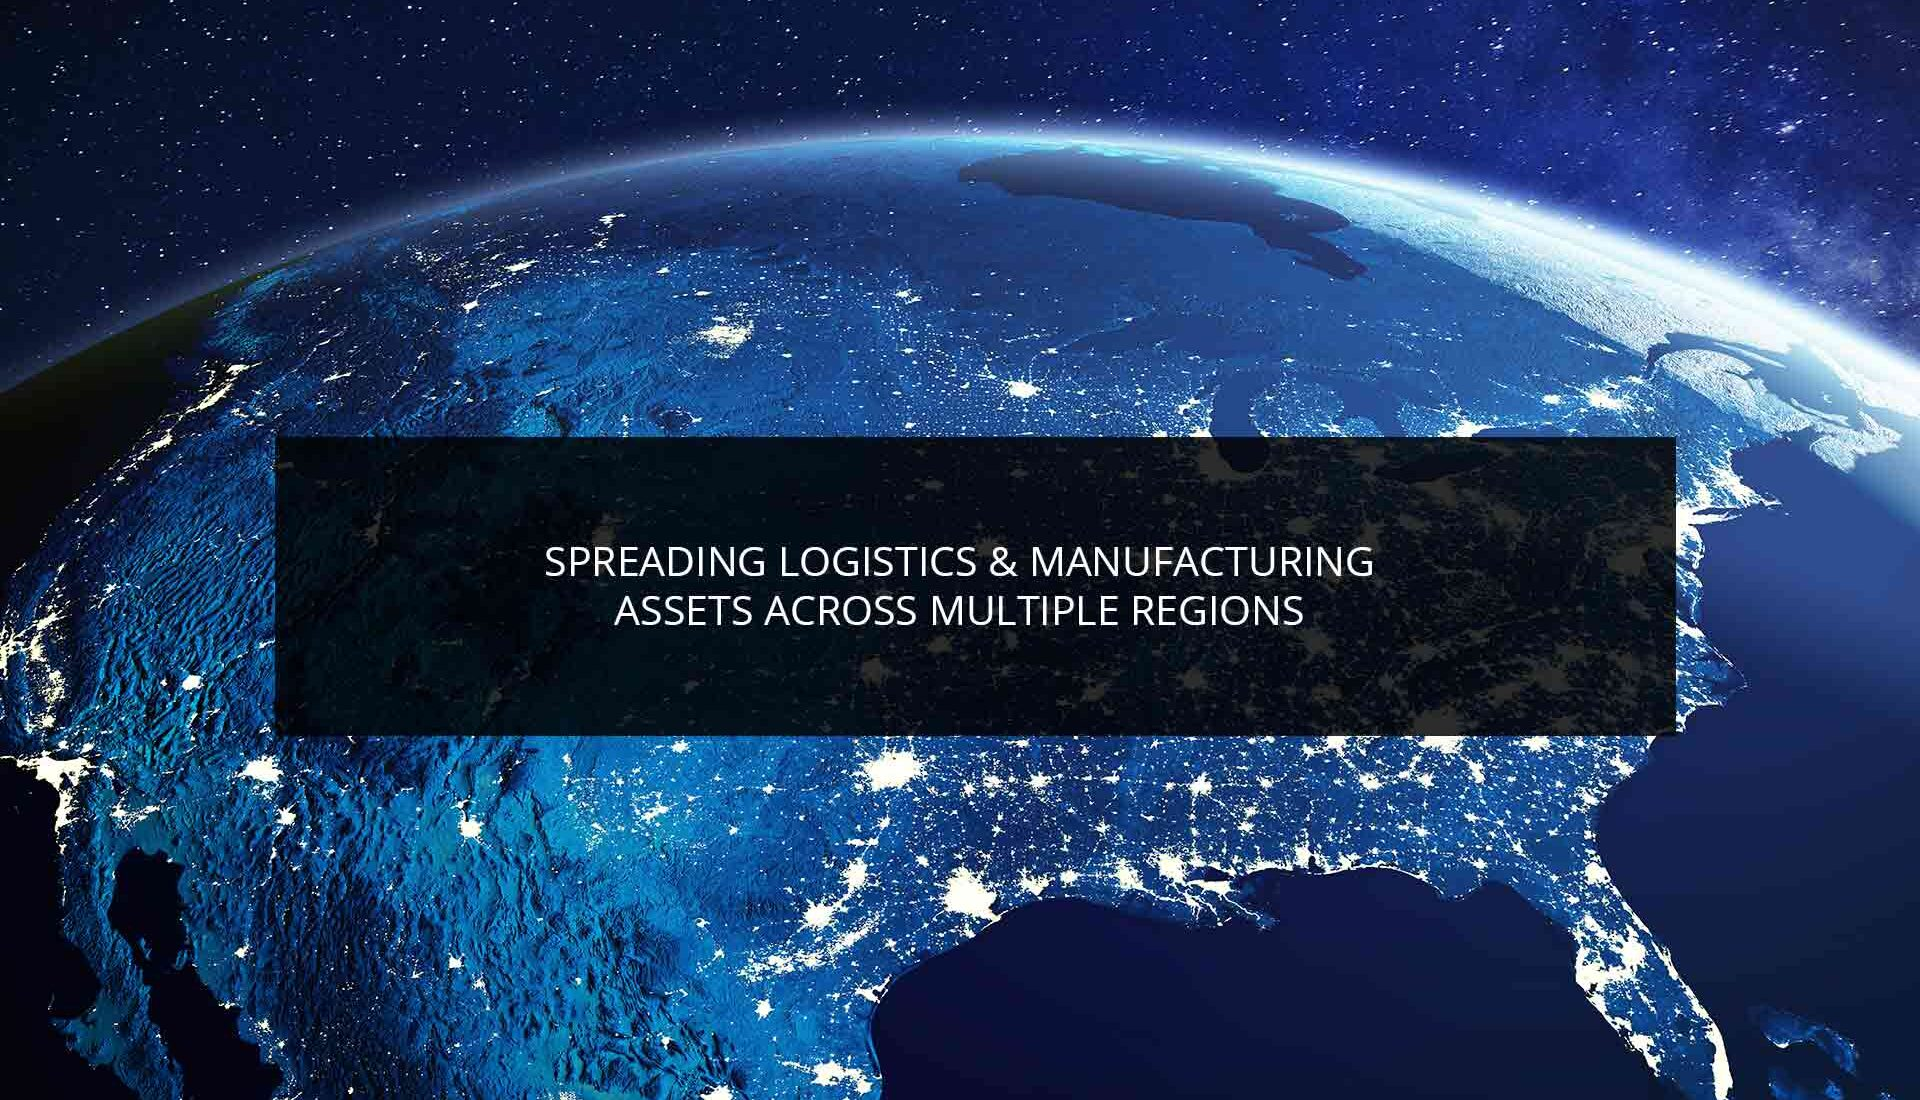 Spreading Logistics & Manufacturing Assets Across Multiple Regions